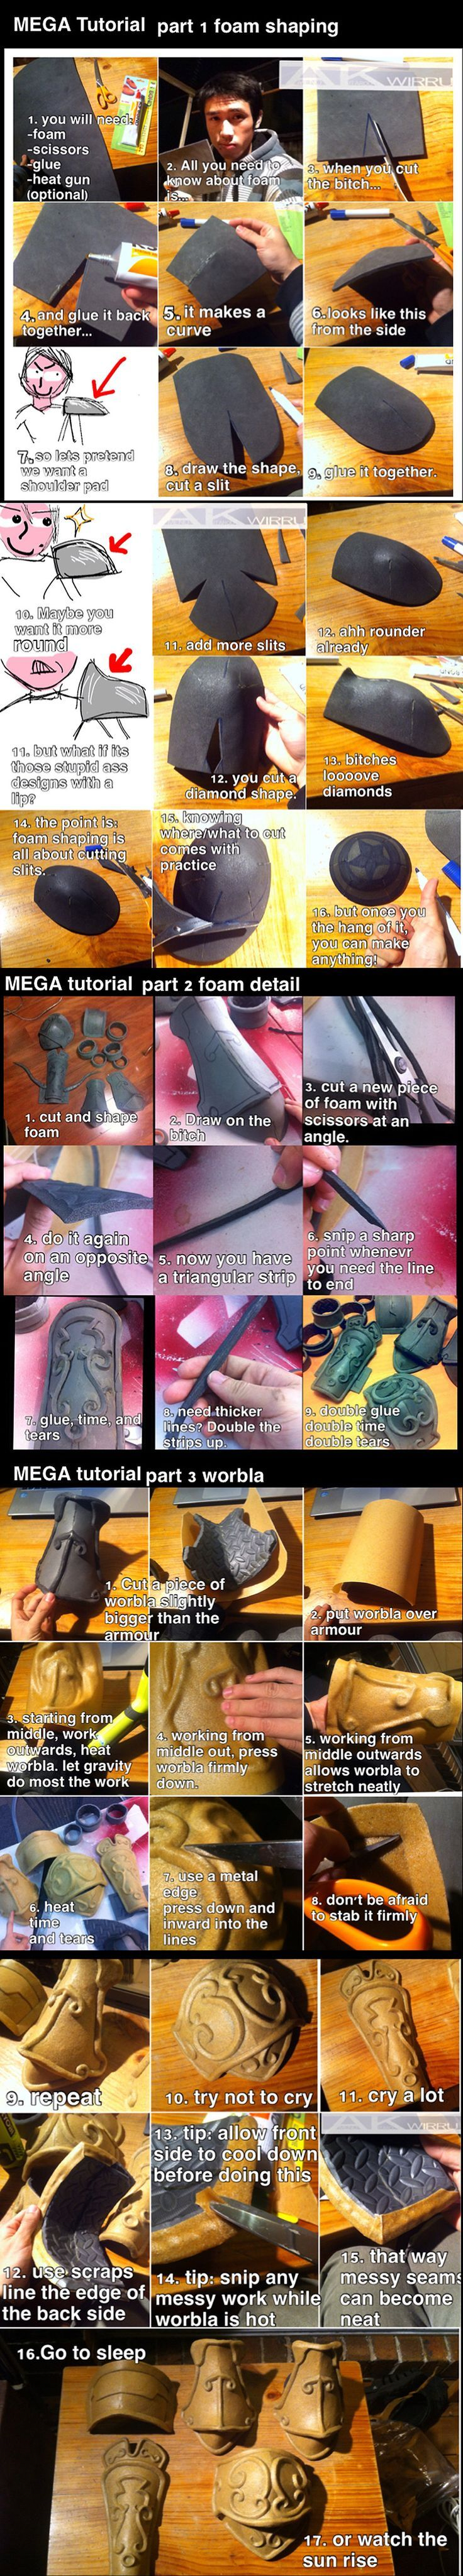 how to make armour stuff, shaping foam and stuff.. found on http://imgur.com/gallery/ULEAMsL